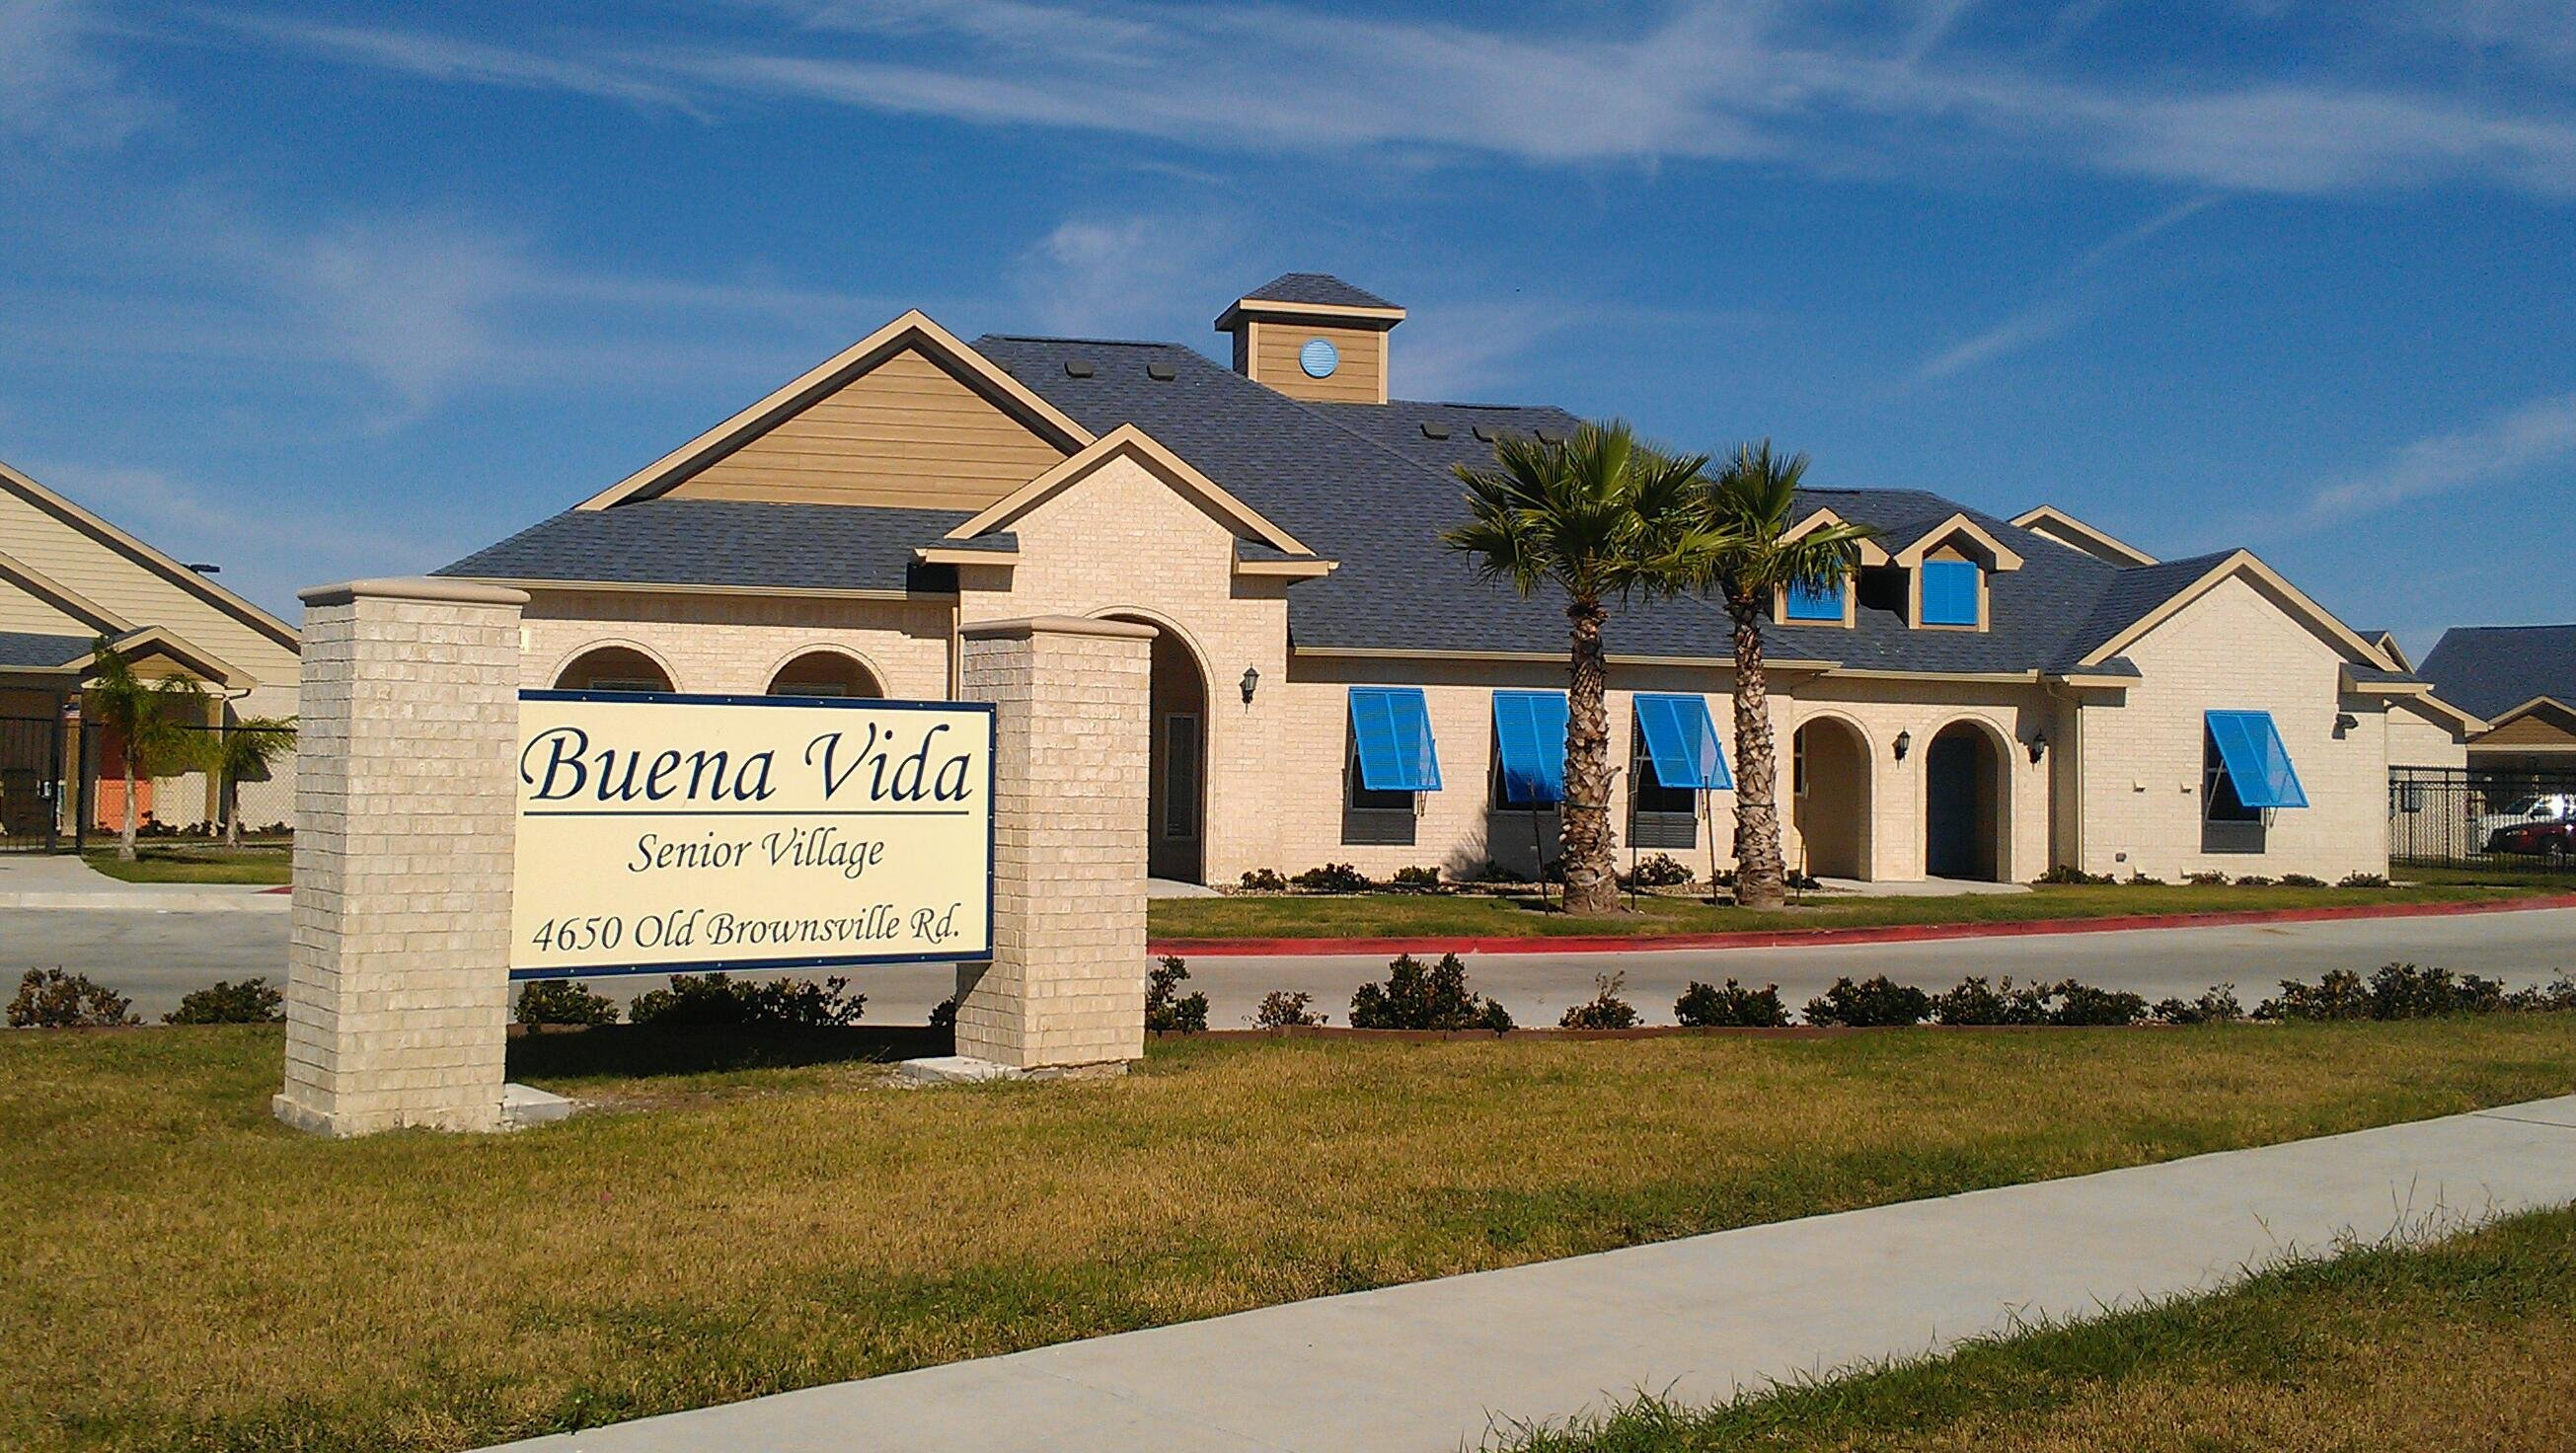 Buena Vida Senior Village